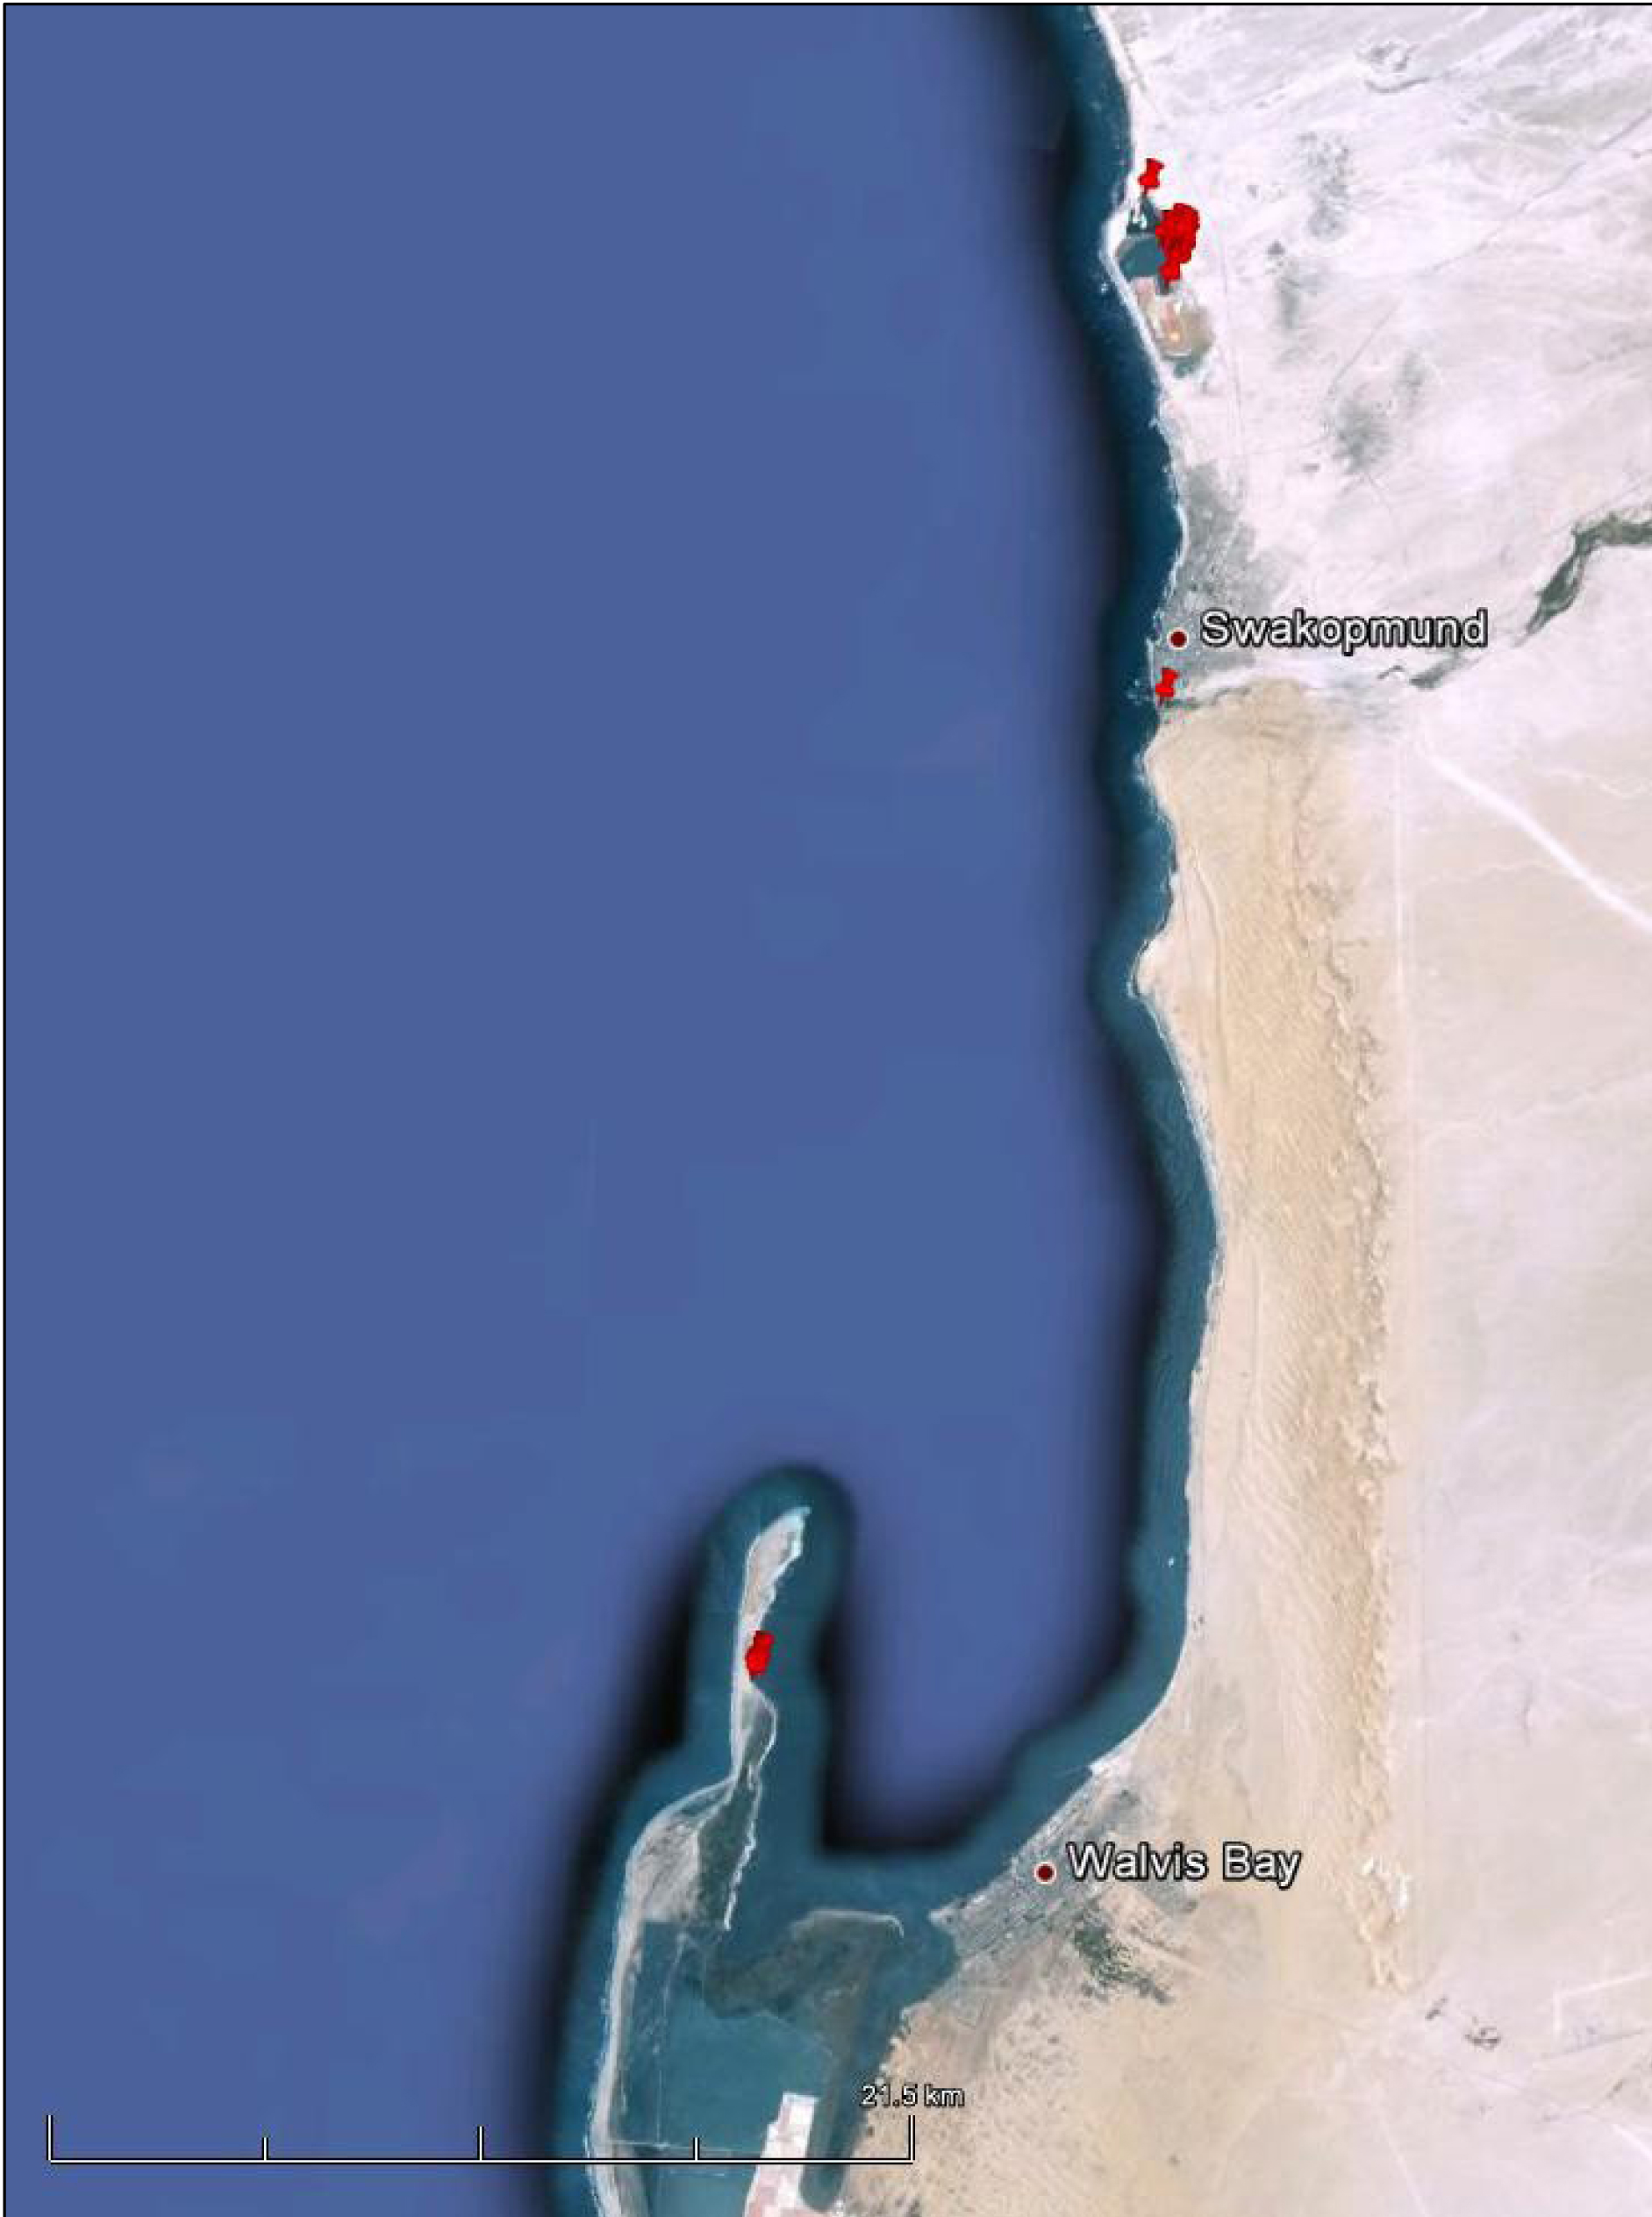 Localities (red markers) recorded for two Greater Flamingos (based on a Google map compiled by John Mendelsohn: Raison).